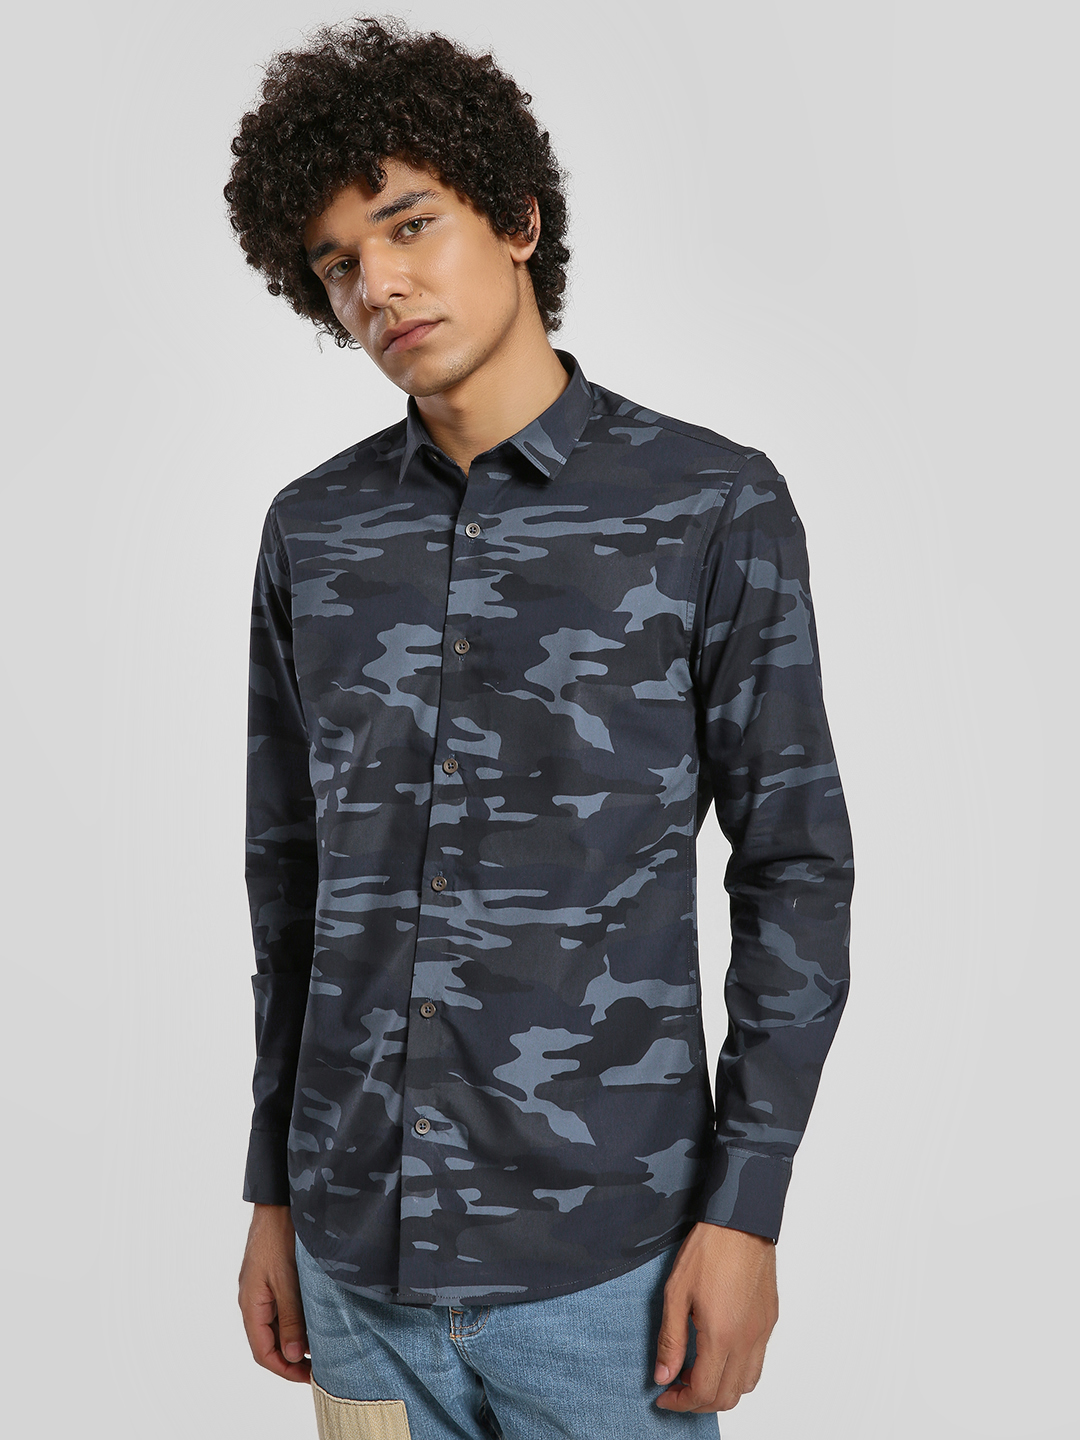 Green Hill Blue Camo Print Long Sleeve Shirt 1